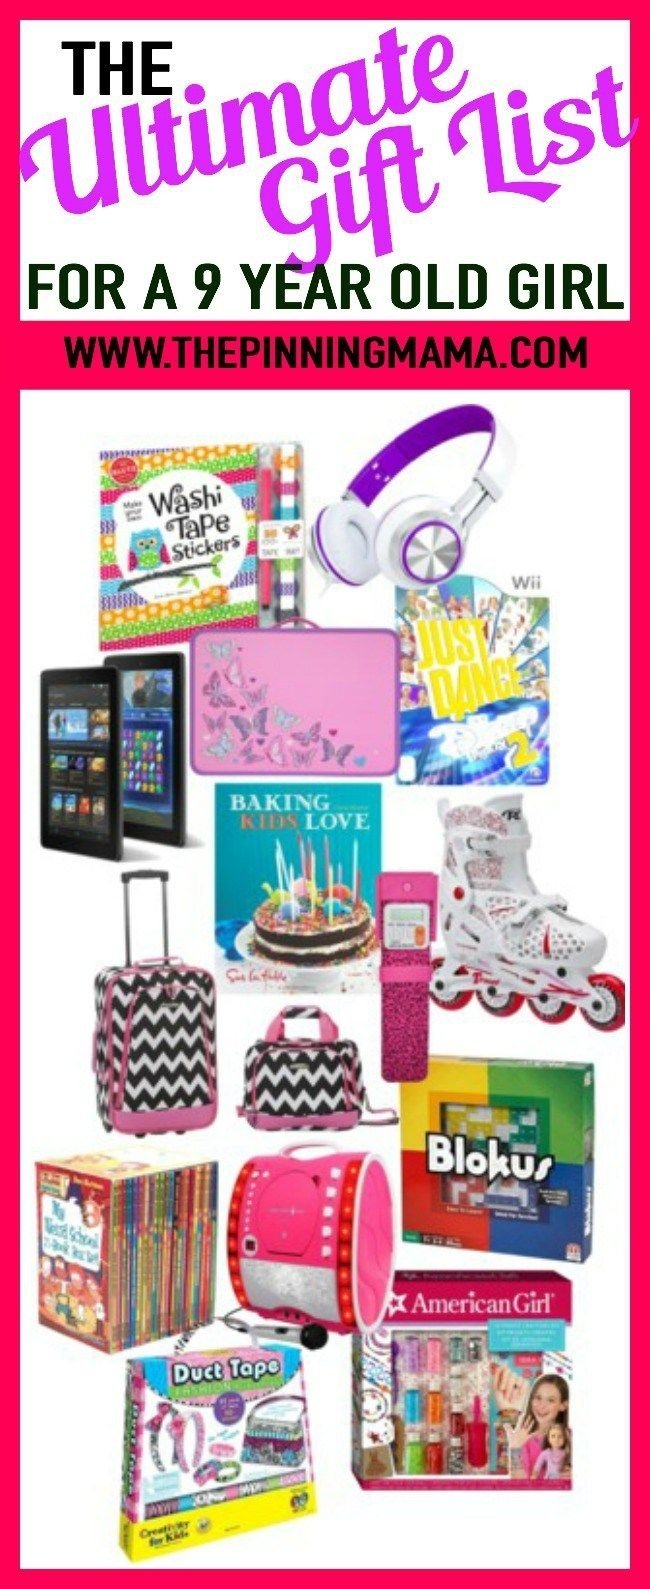 10 Unique Gift Ideas For An 11 Year Old Girl the ultimate gift list for a 9 year old girl top toys girls age 9 5 2020